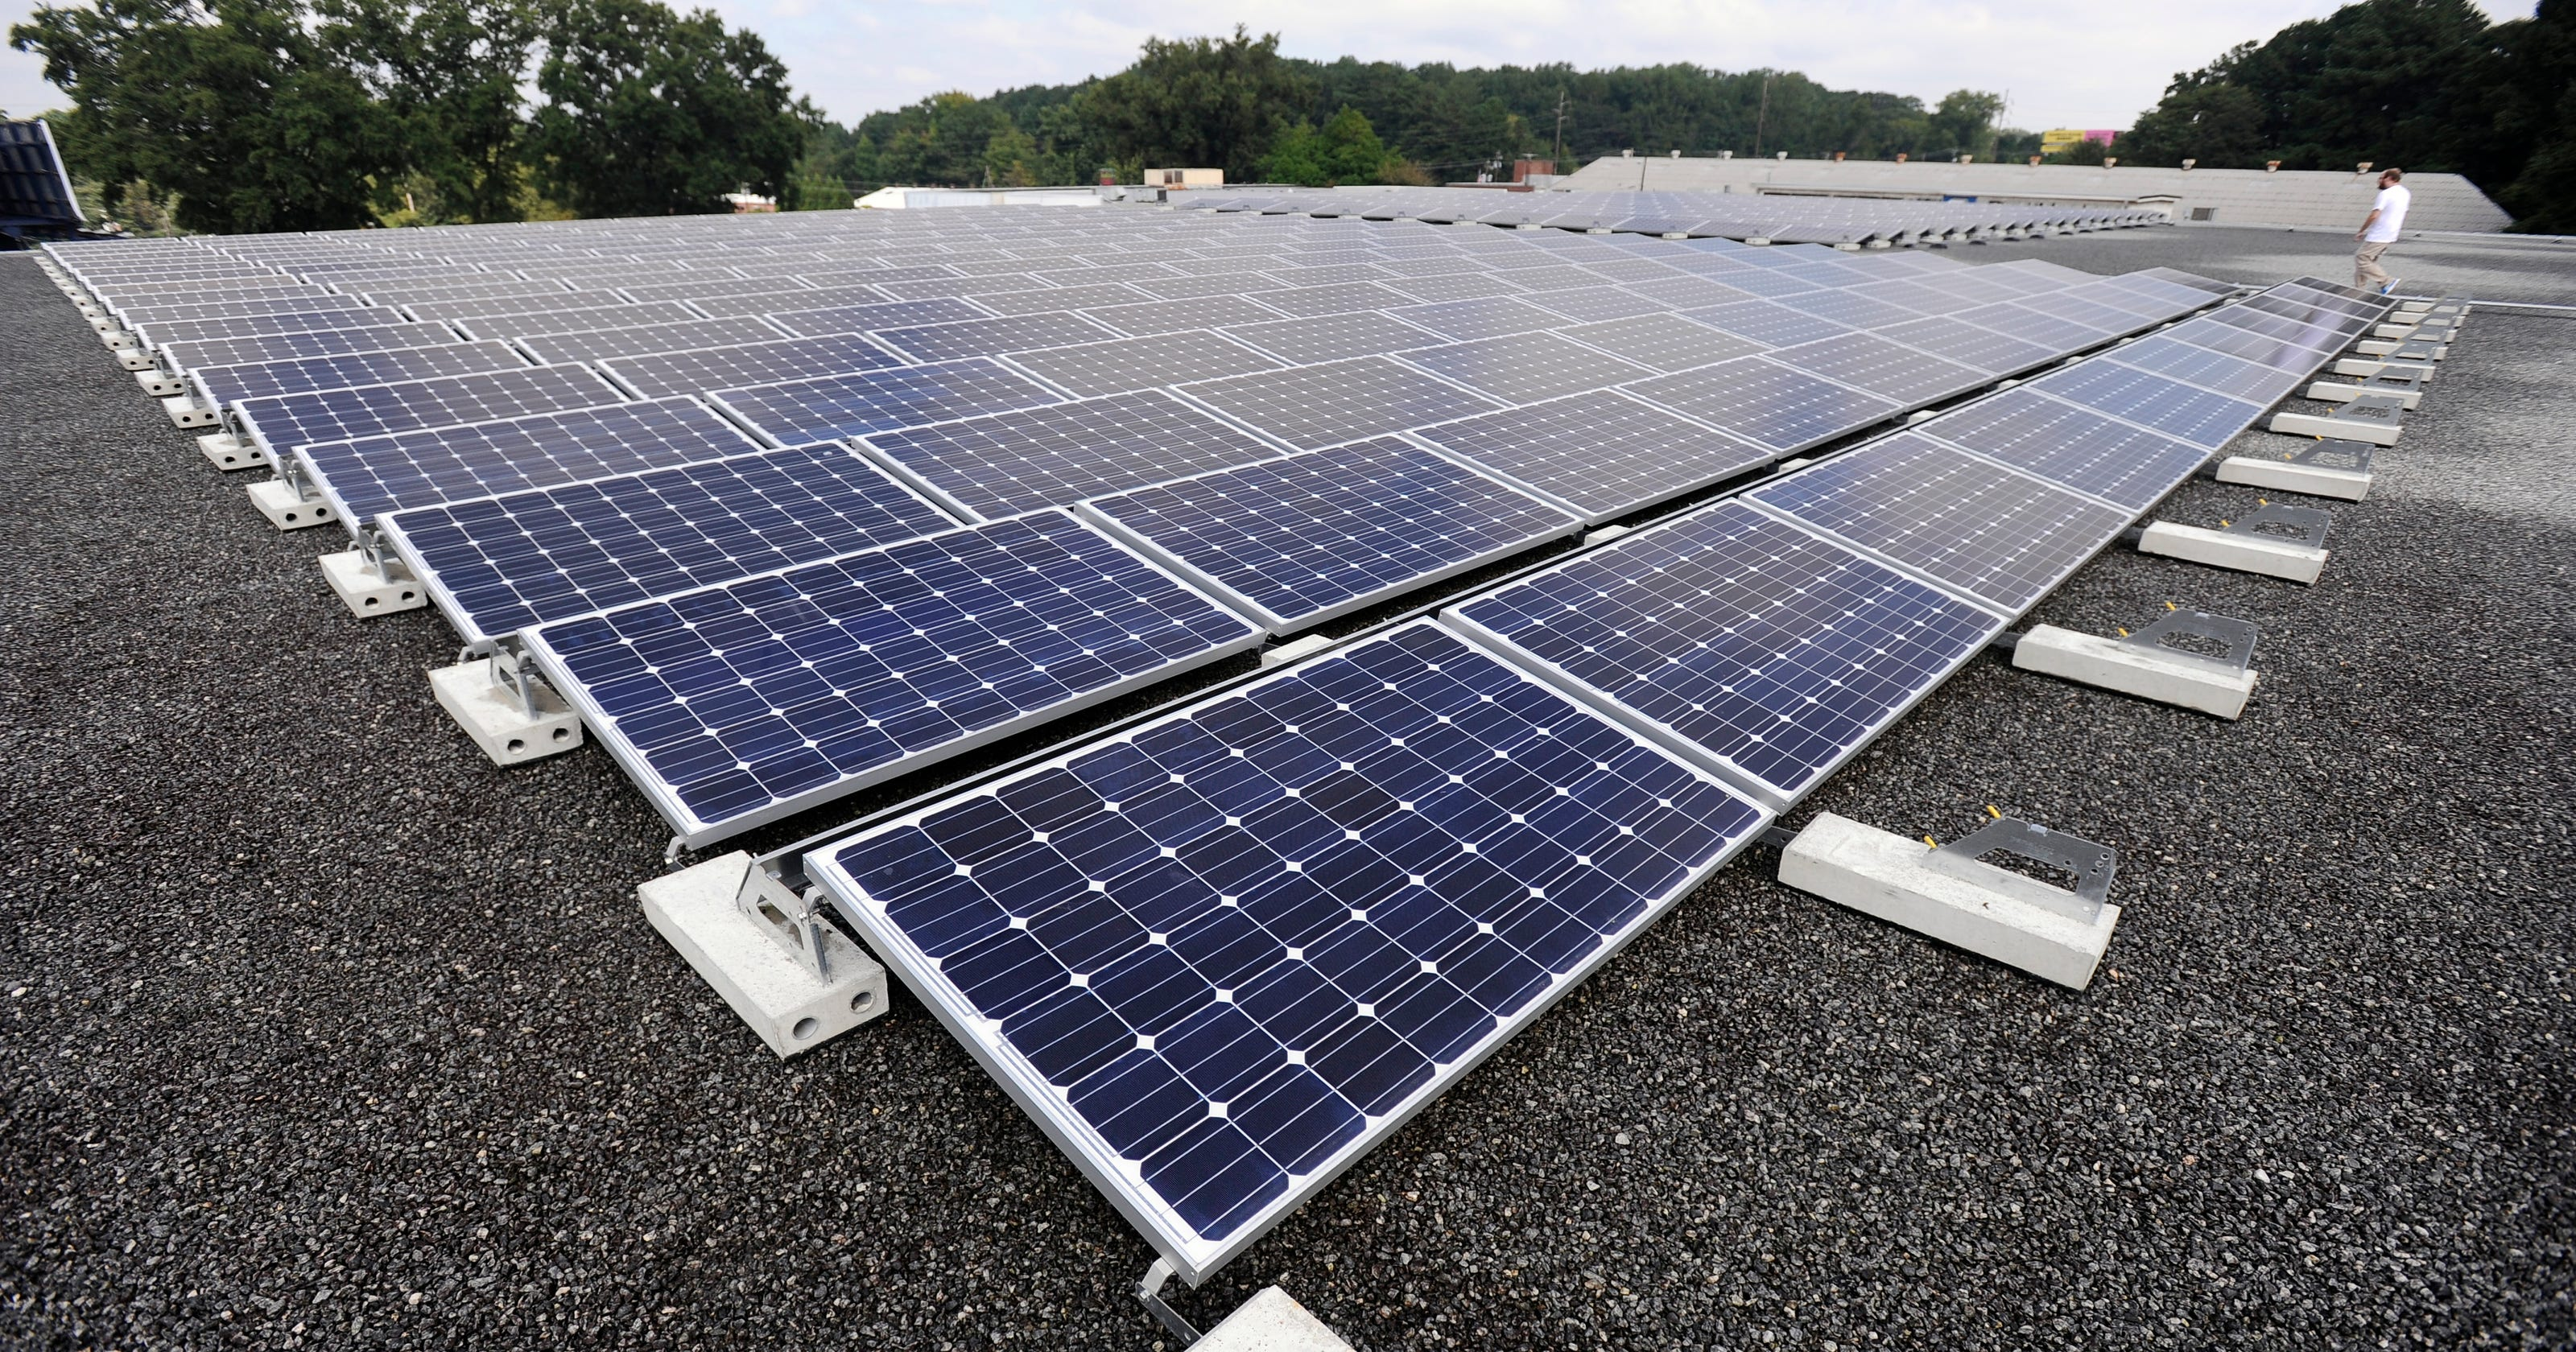 Ithaca Mayor Signs Solar Power Pact